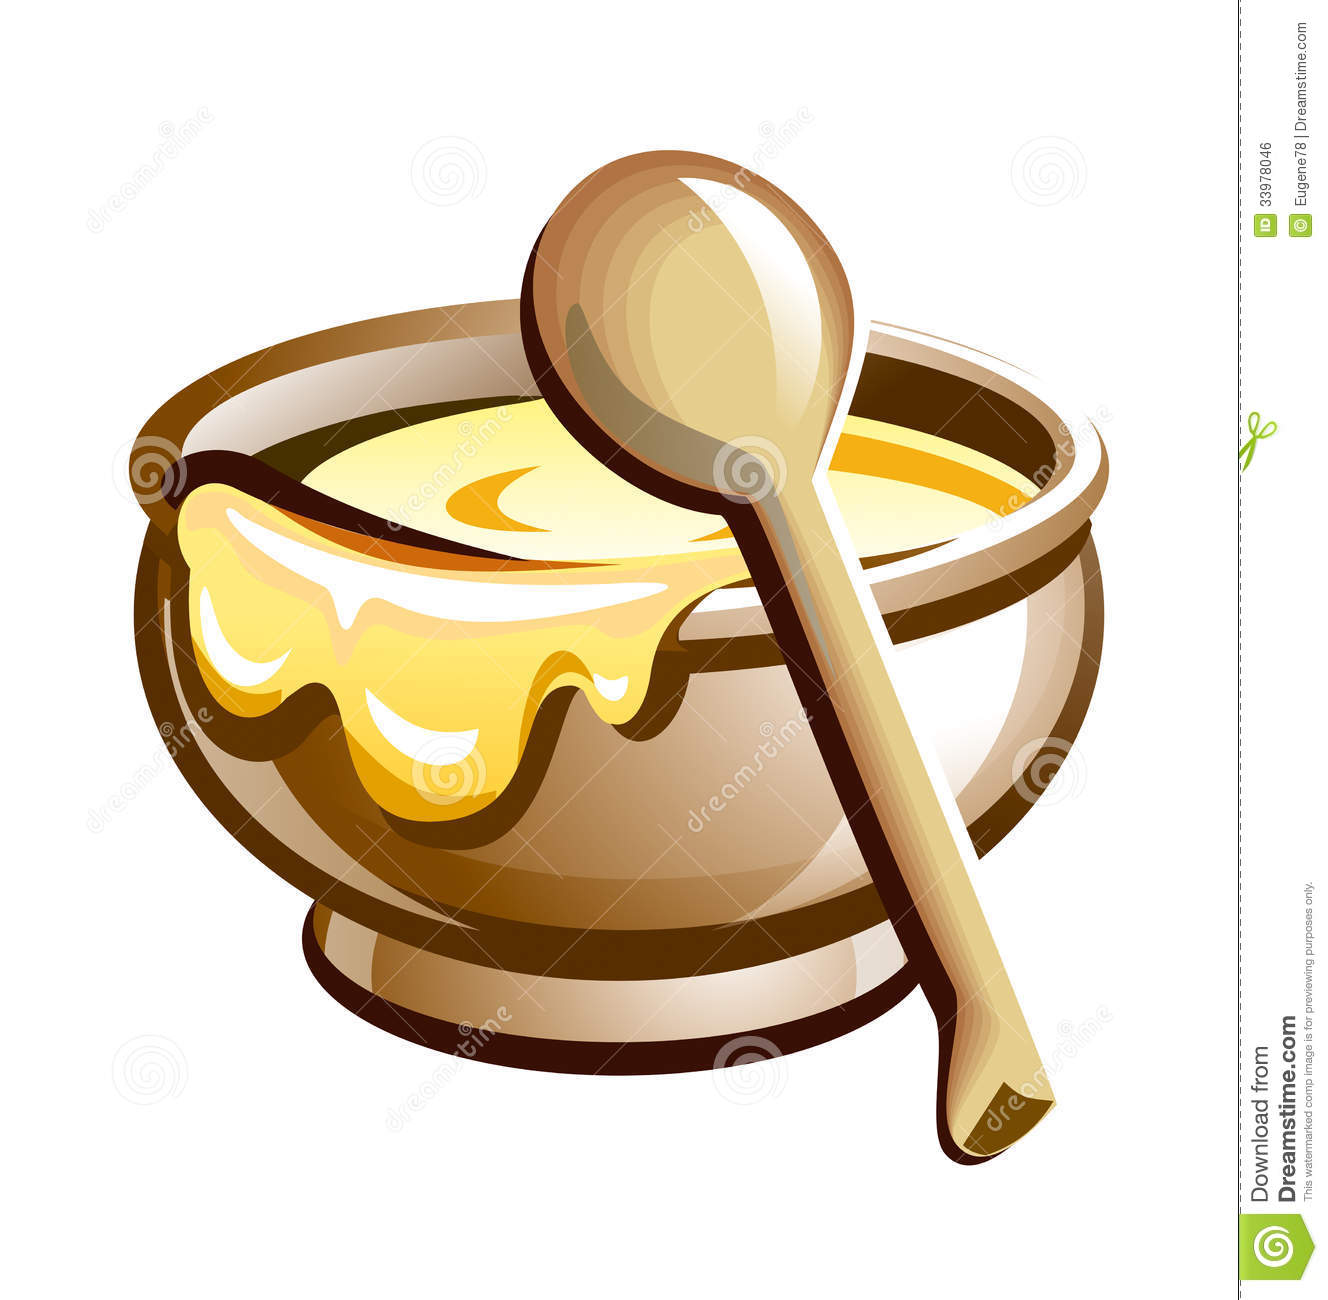 Porridge In The Pot With Wooden Spoon Royalty Free Stock ...